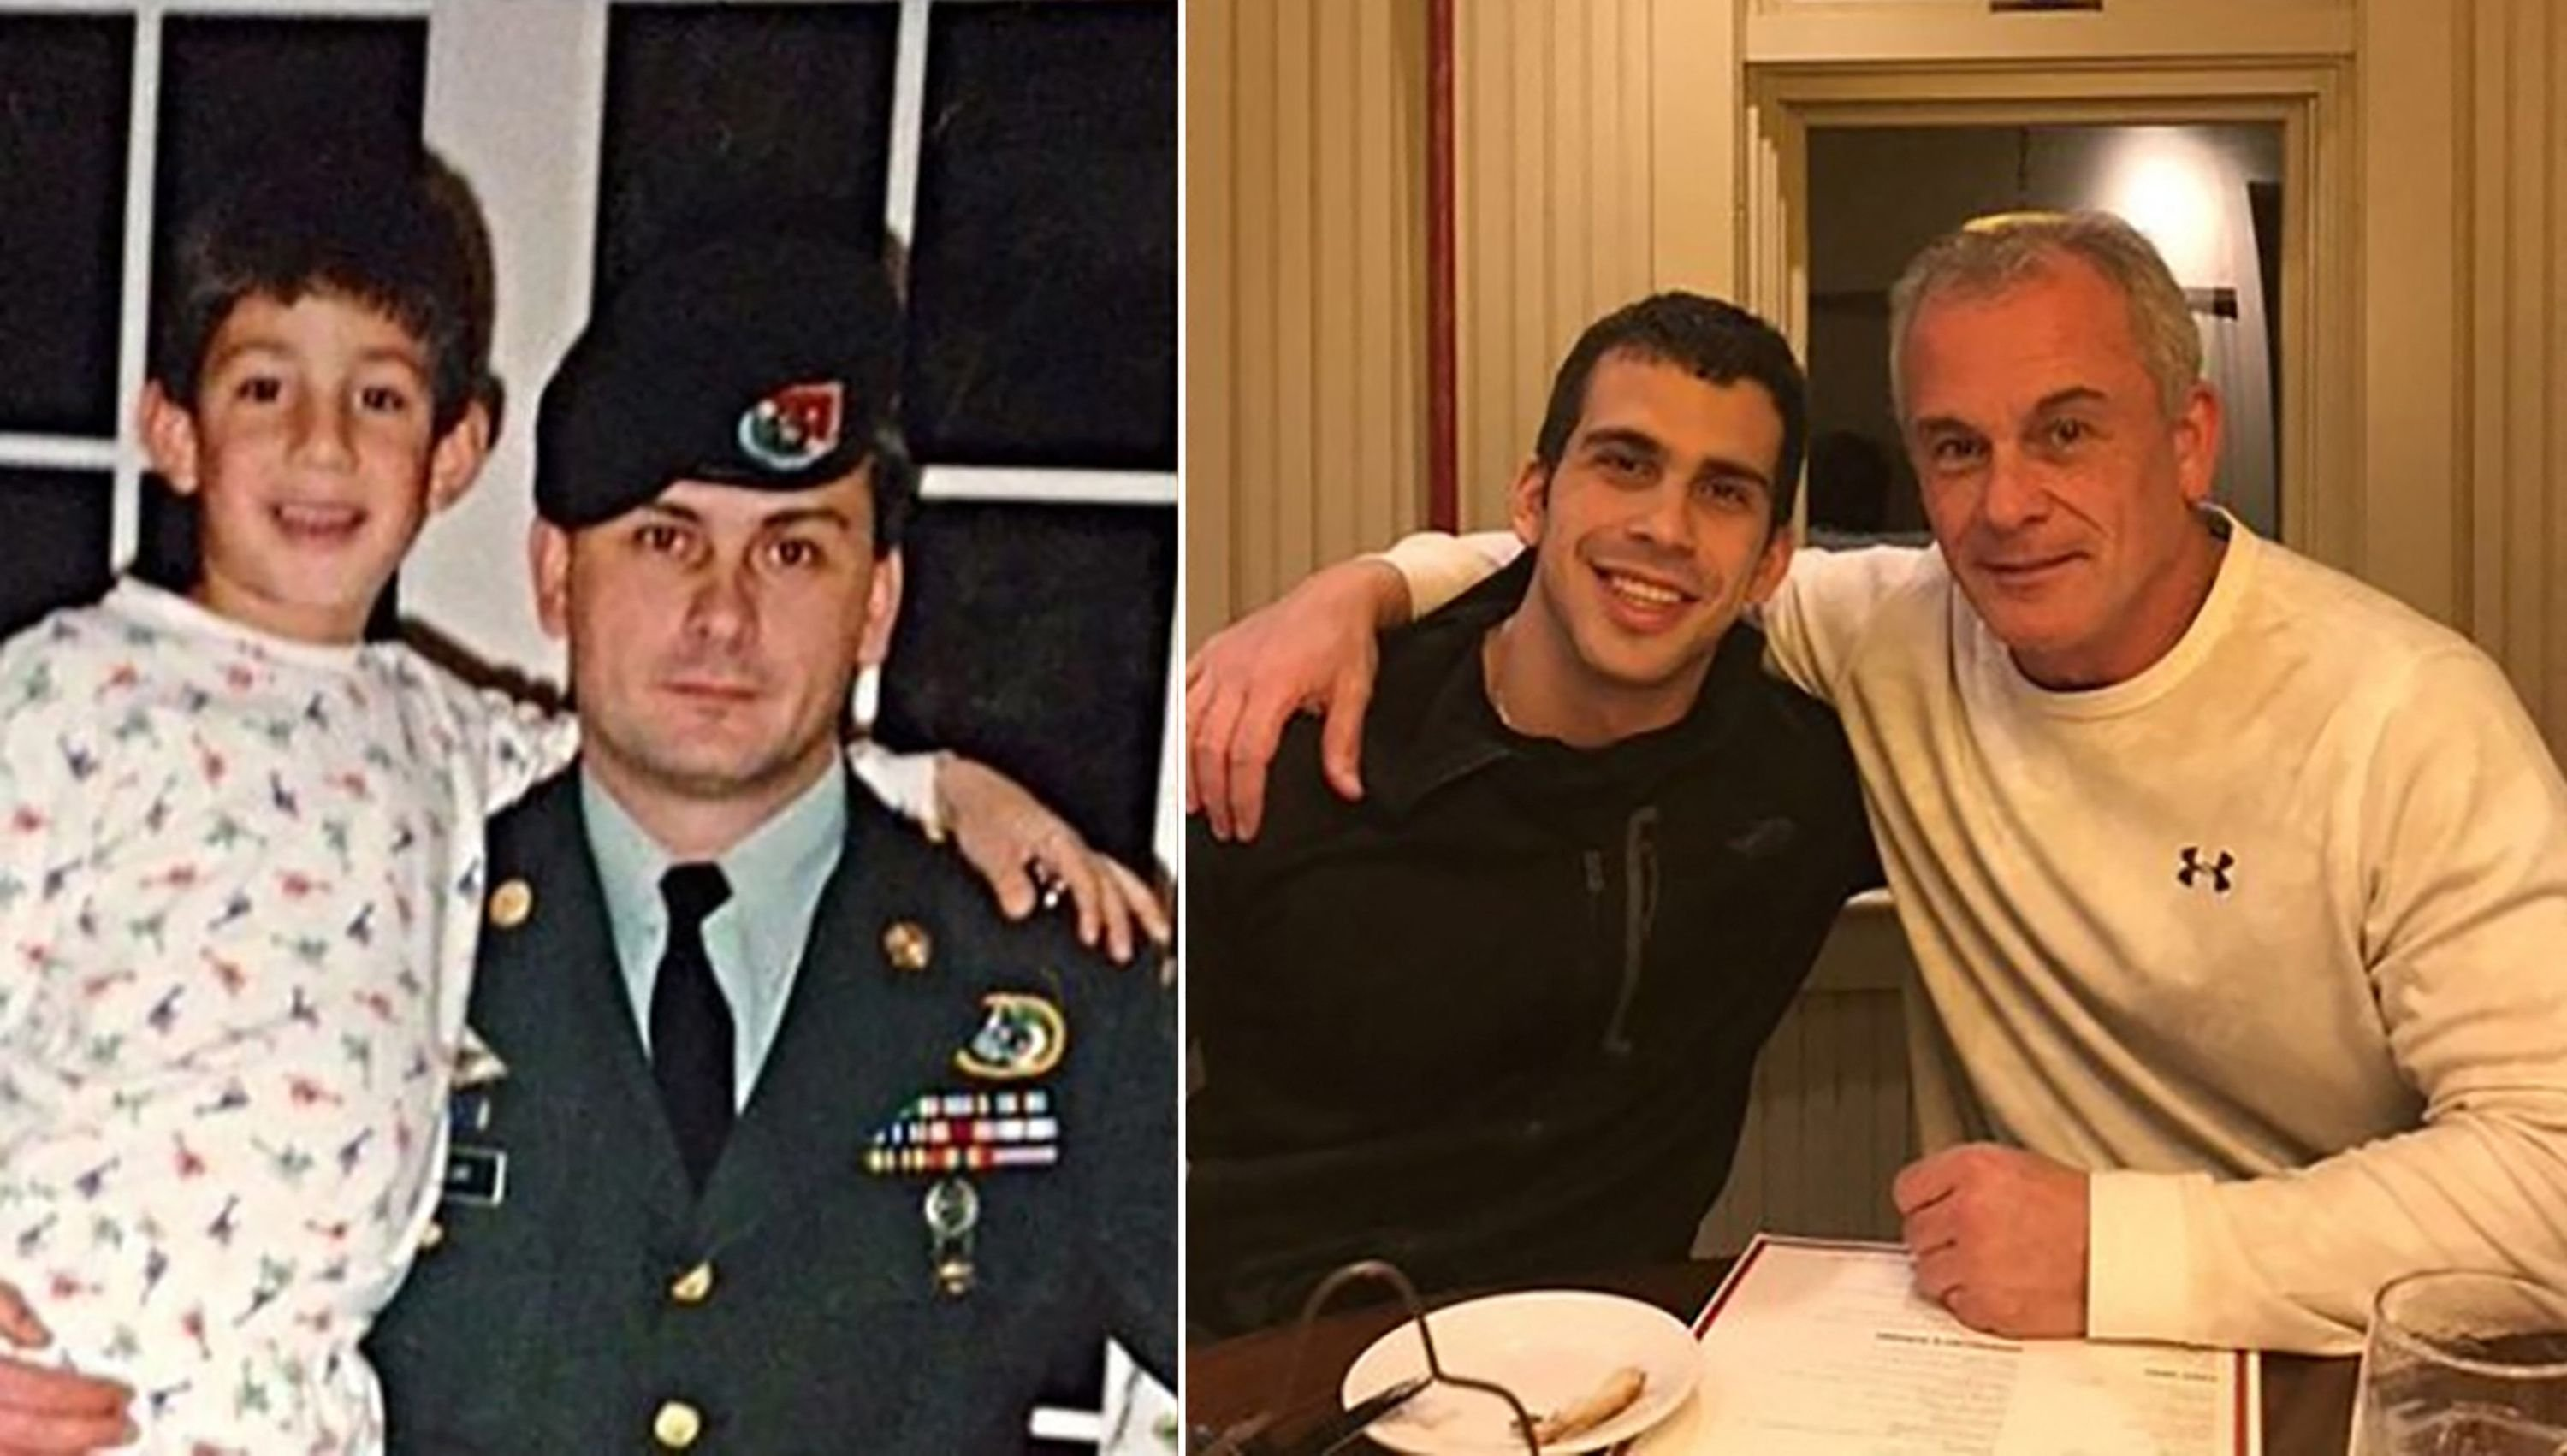 Peter Taylor (L in both images) and his father Michael Taylor, a former U.S. special forces member, pose together years apart, in an undated combination of photos released in March 2021. (Family handout courtesy of Rudy Michael Taylor in the U.S. / AFP)